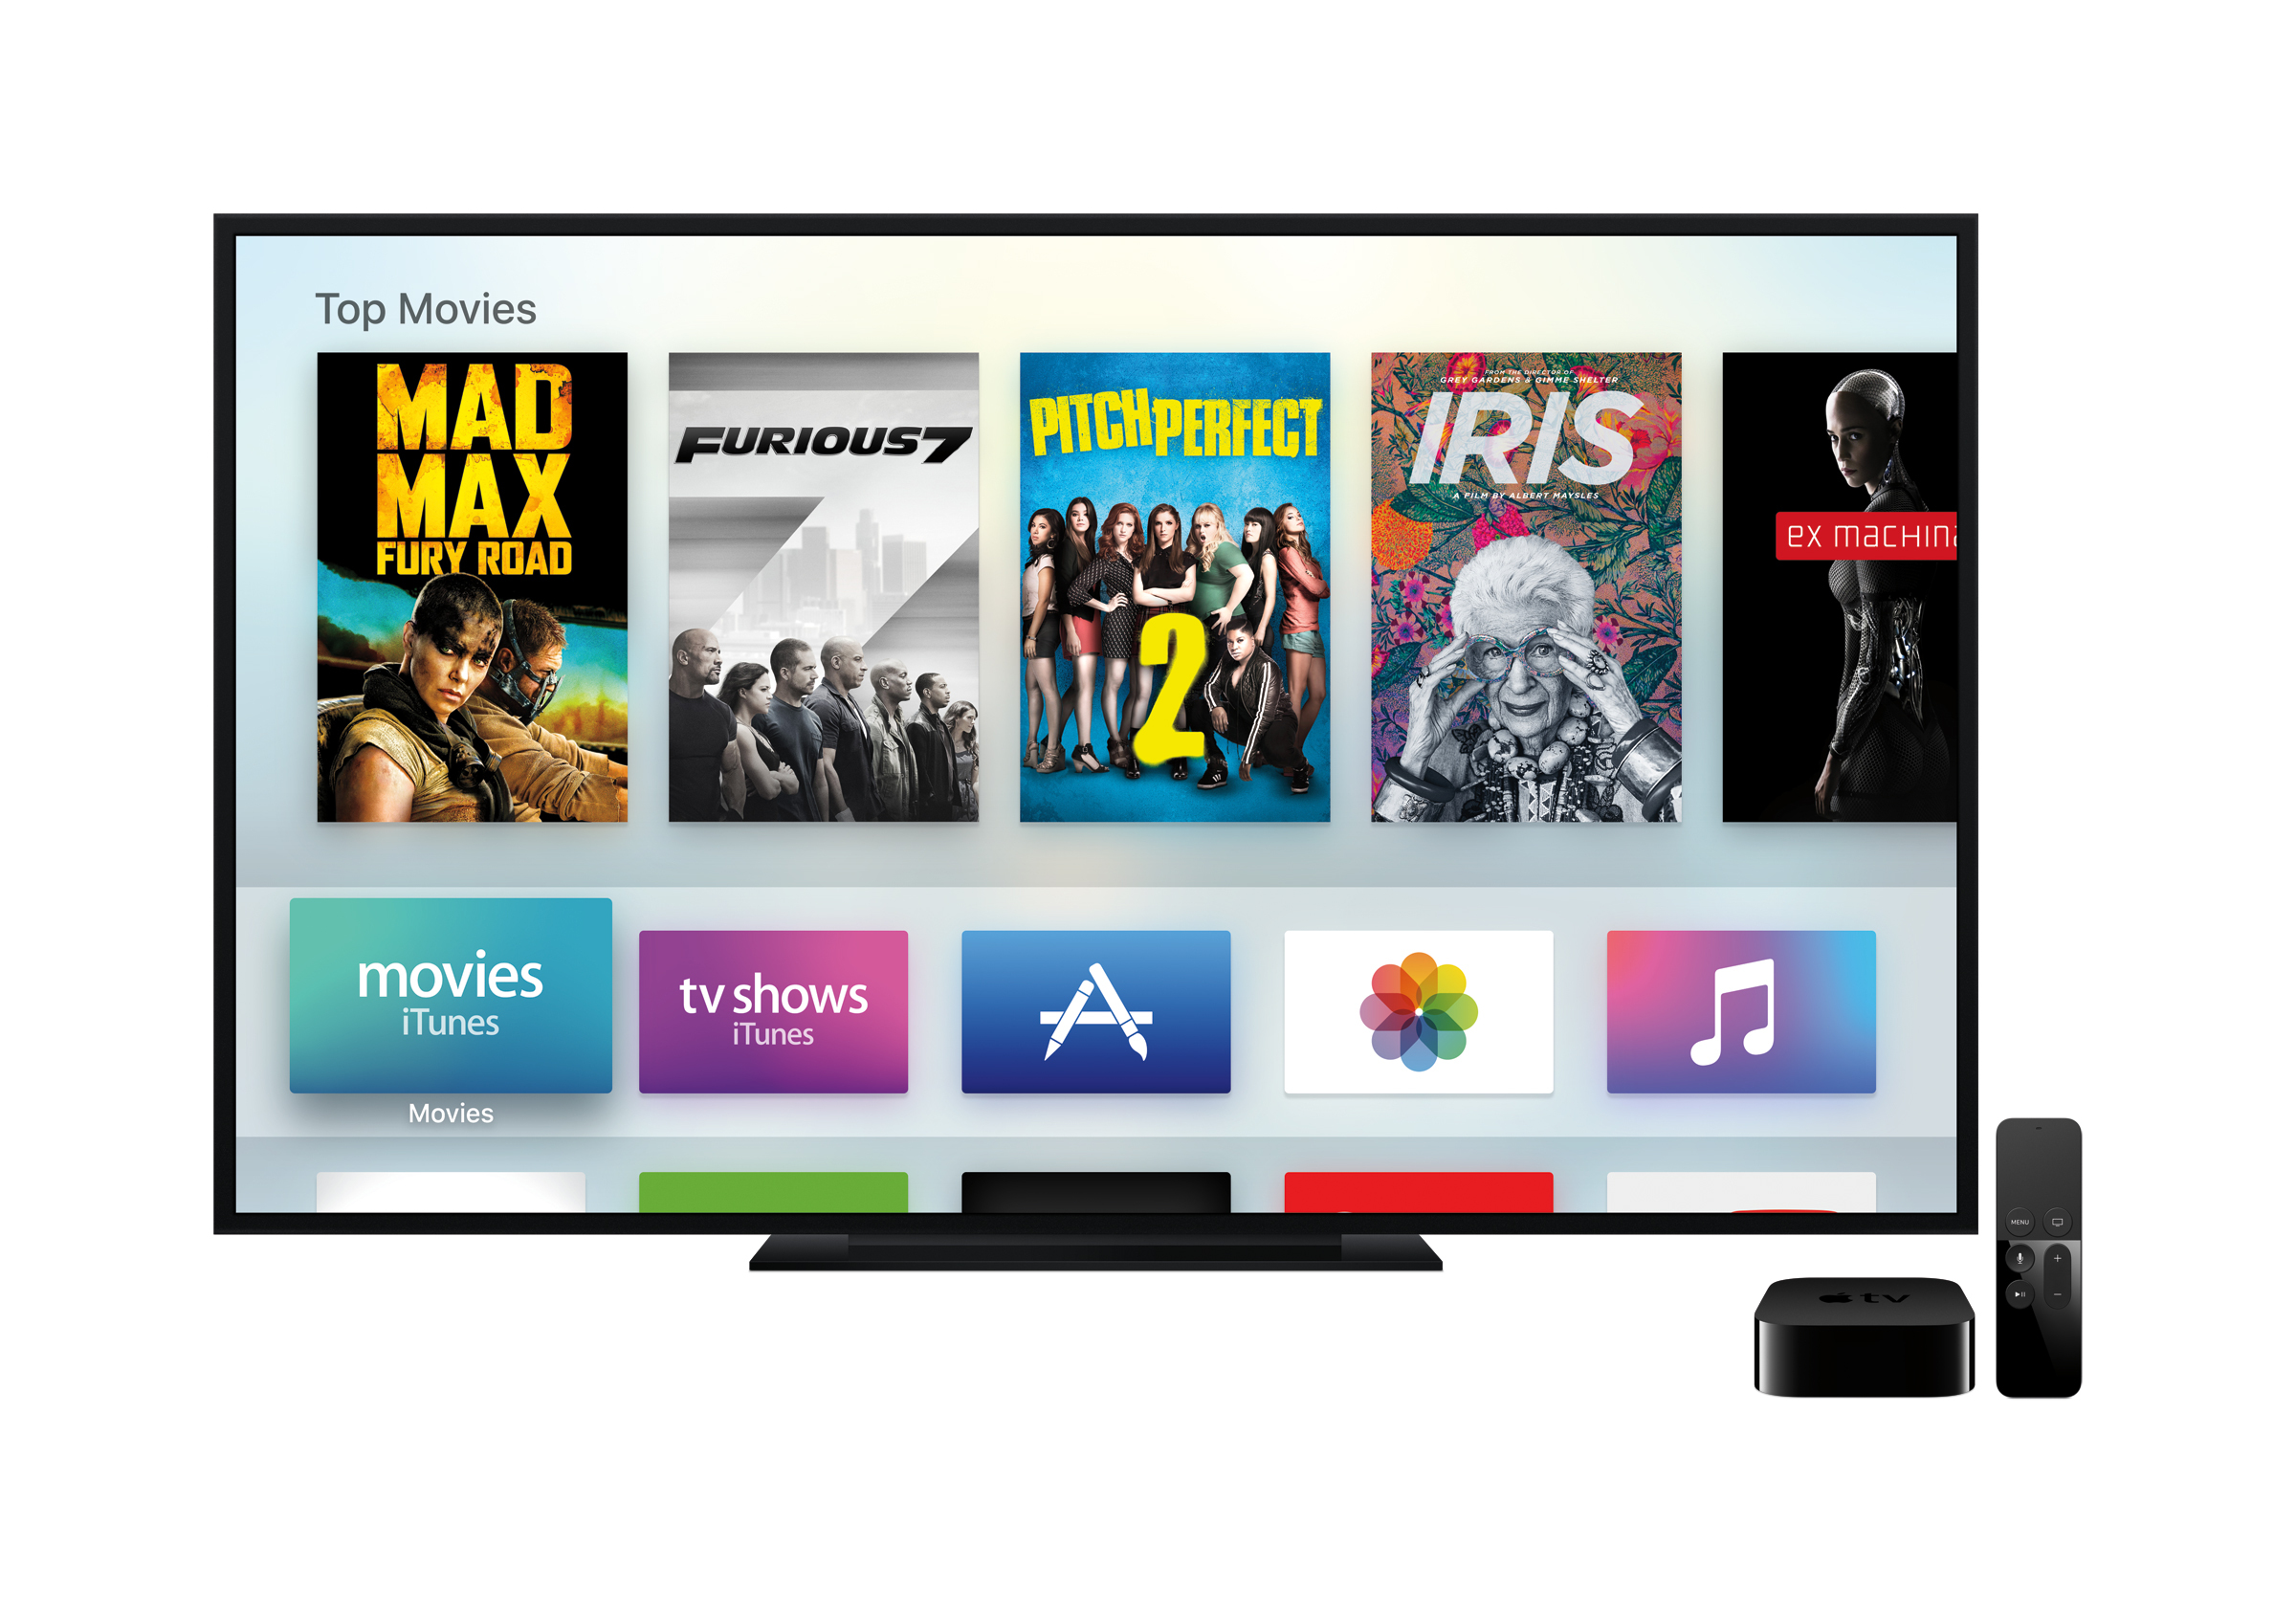 How to hide or delete the app on Apple TV